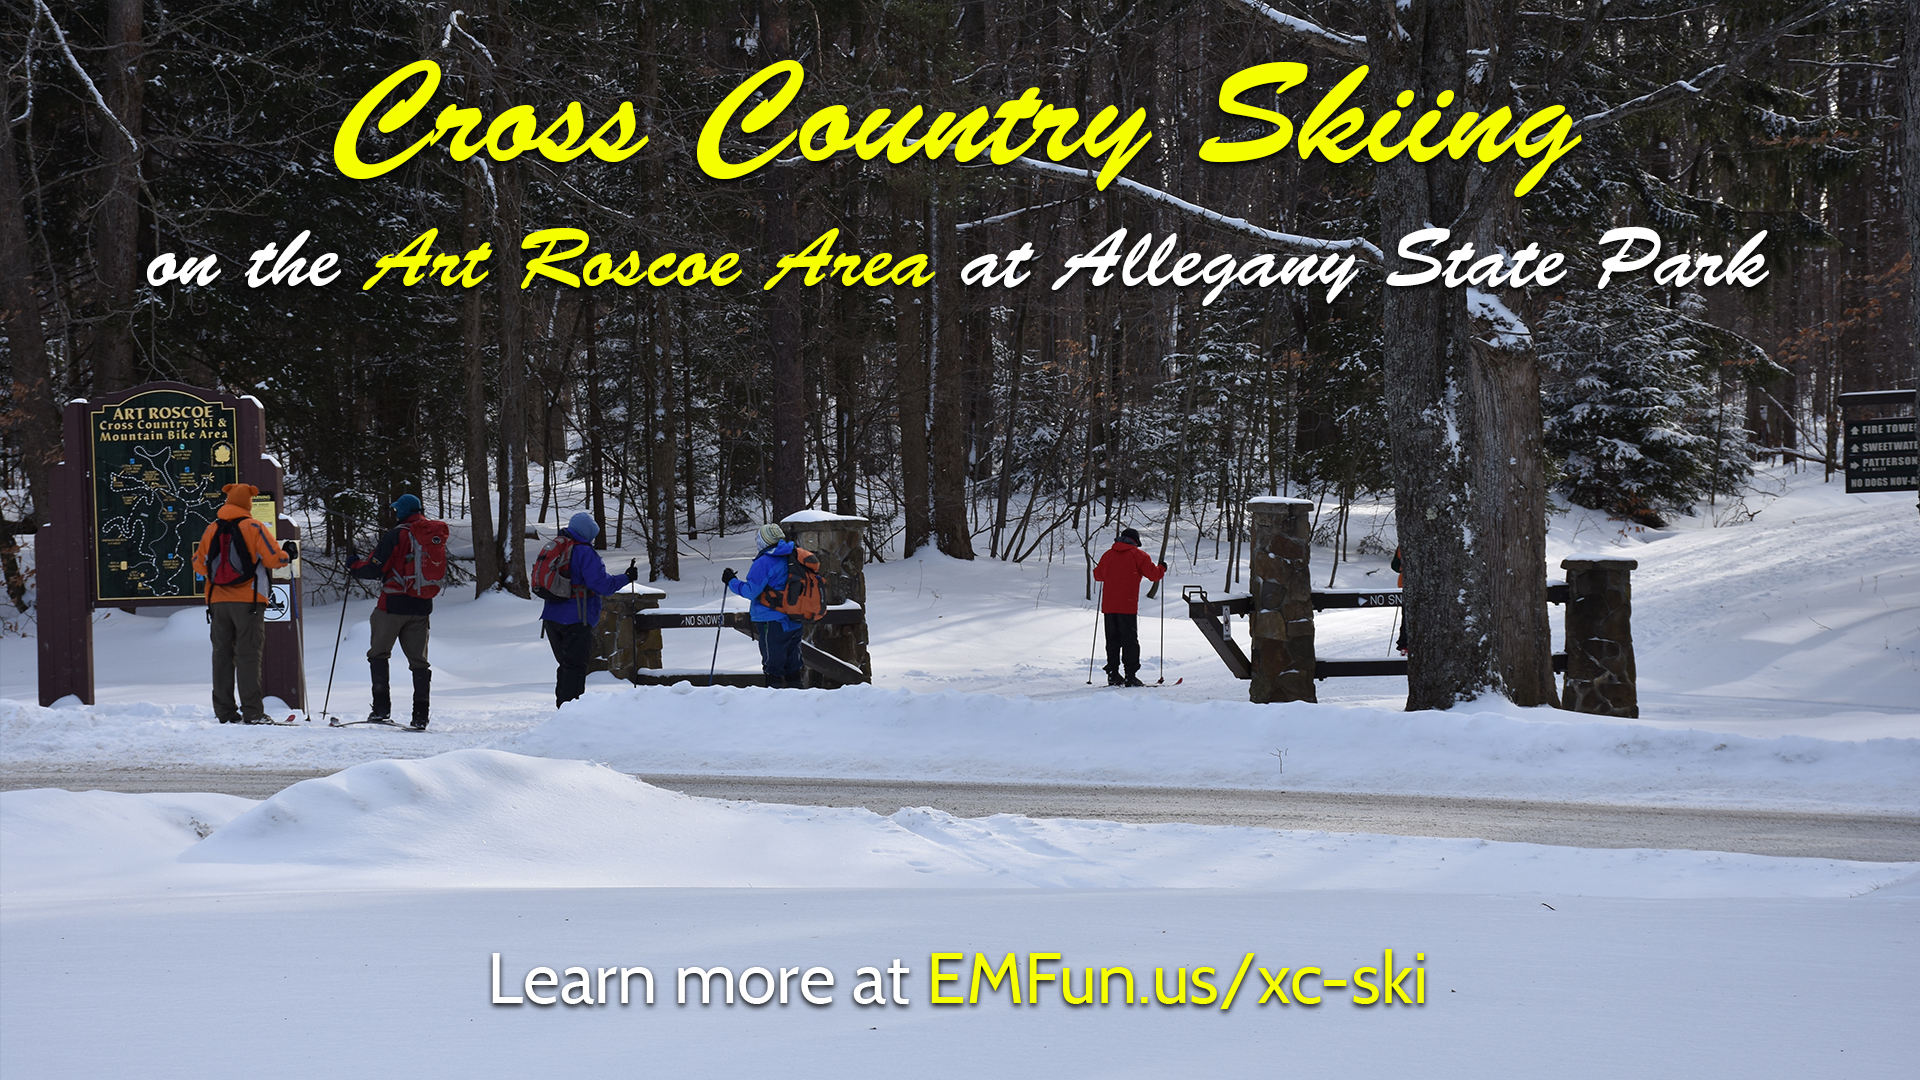 Cross Country Ski at Art Roscoe in Allegany State Park